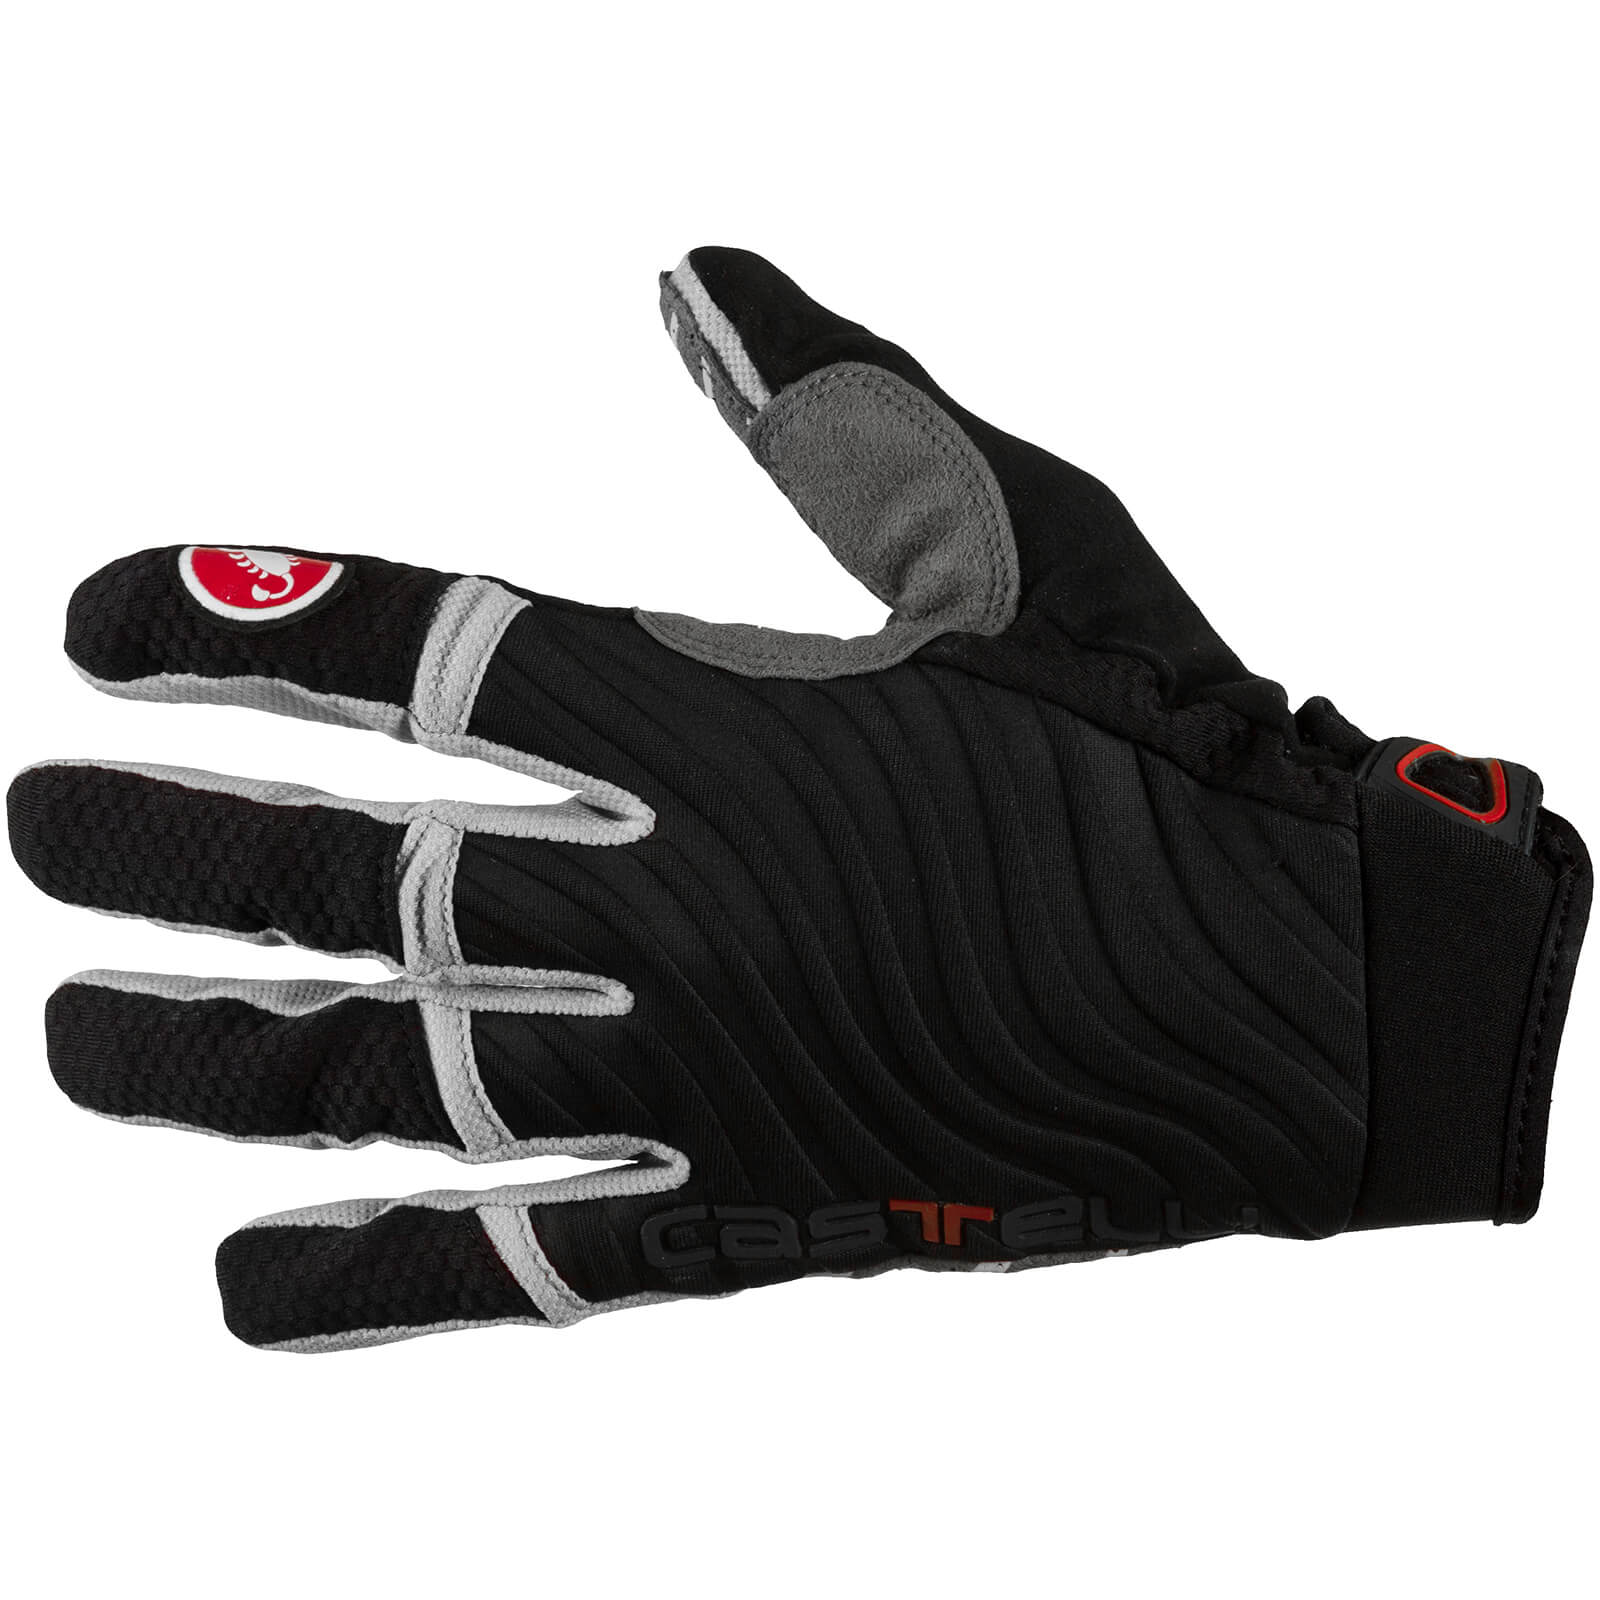 Castelli CW 6.0 Cross Gloves - Black/Luna Grey